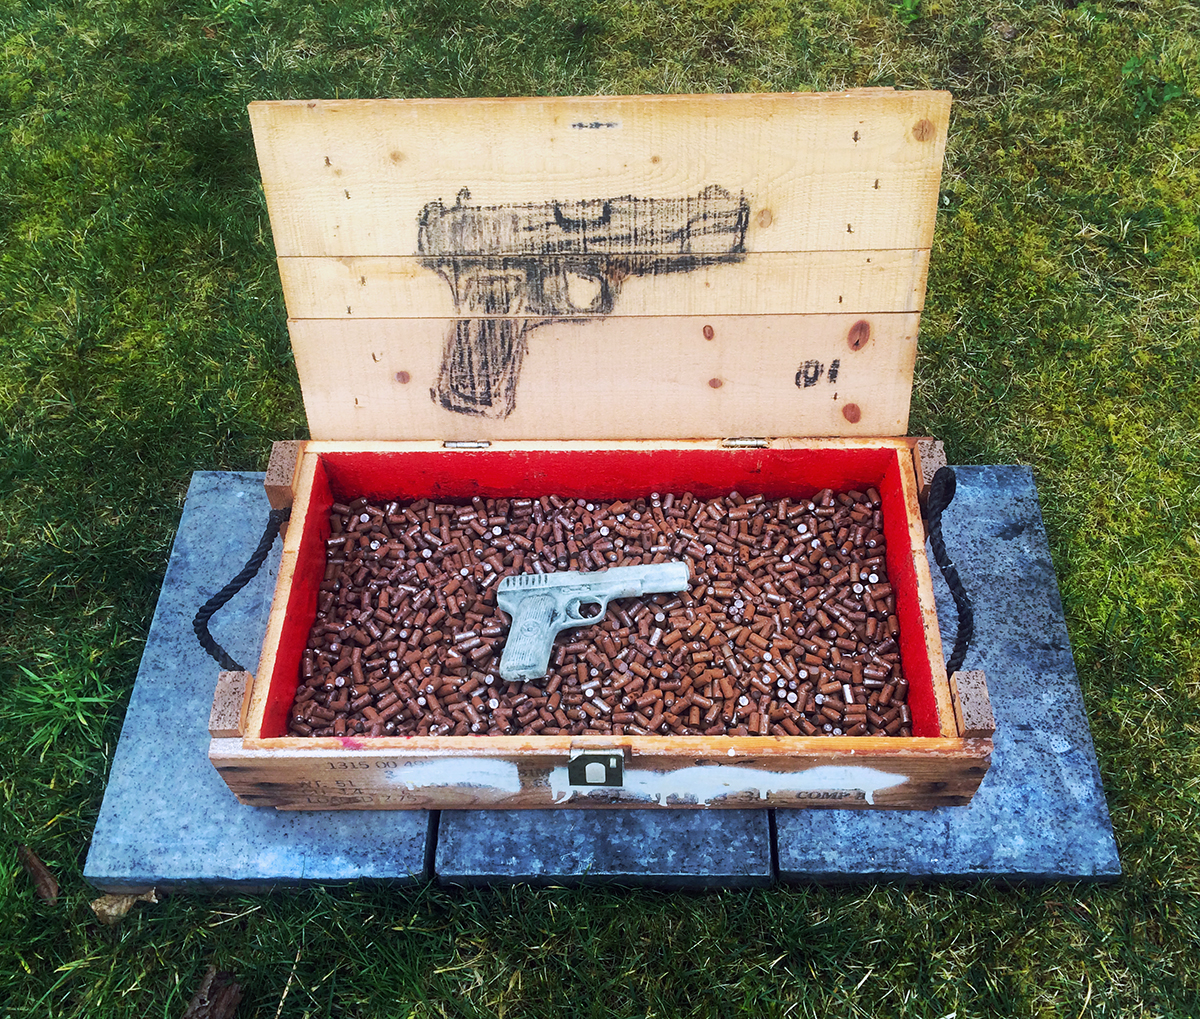 """Baudrillard [Simulation & Simulacra]"" Ammo Crate, Metal Slugs, Toy Gun, Acrylic Paint, Charcoal 18"" x 26"" x 14"" 2006 $2800  ""Baudrillard"" was initially exhibited in ""7 Episodes"" at the CGU art building Project Gallery. The reference to Baudrillard is a post-EGS titular superimposition. My appreciation of this 4D installation element grows with time. The pistol is a toy from my childhood, over-painted with luminescent acrylic. I believe I picked up the slugs in Austin. The charcoal was gathered after the Show Low wildfires. The crate came from that IE army surplus store where I acquired Army Joe."